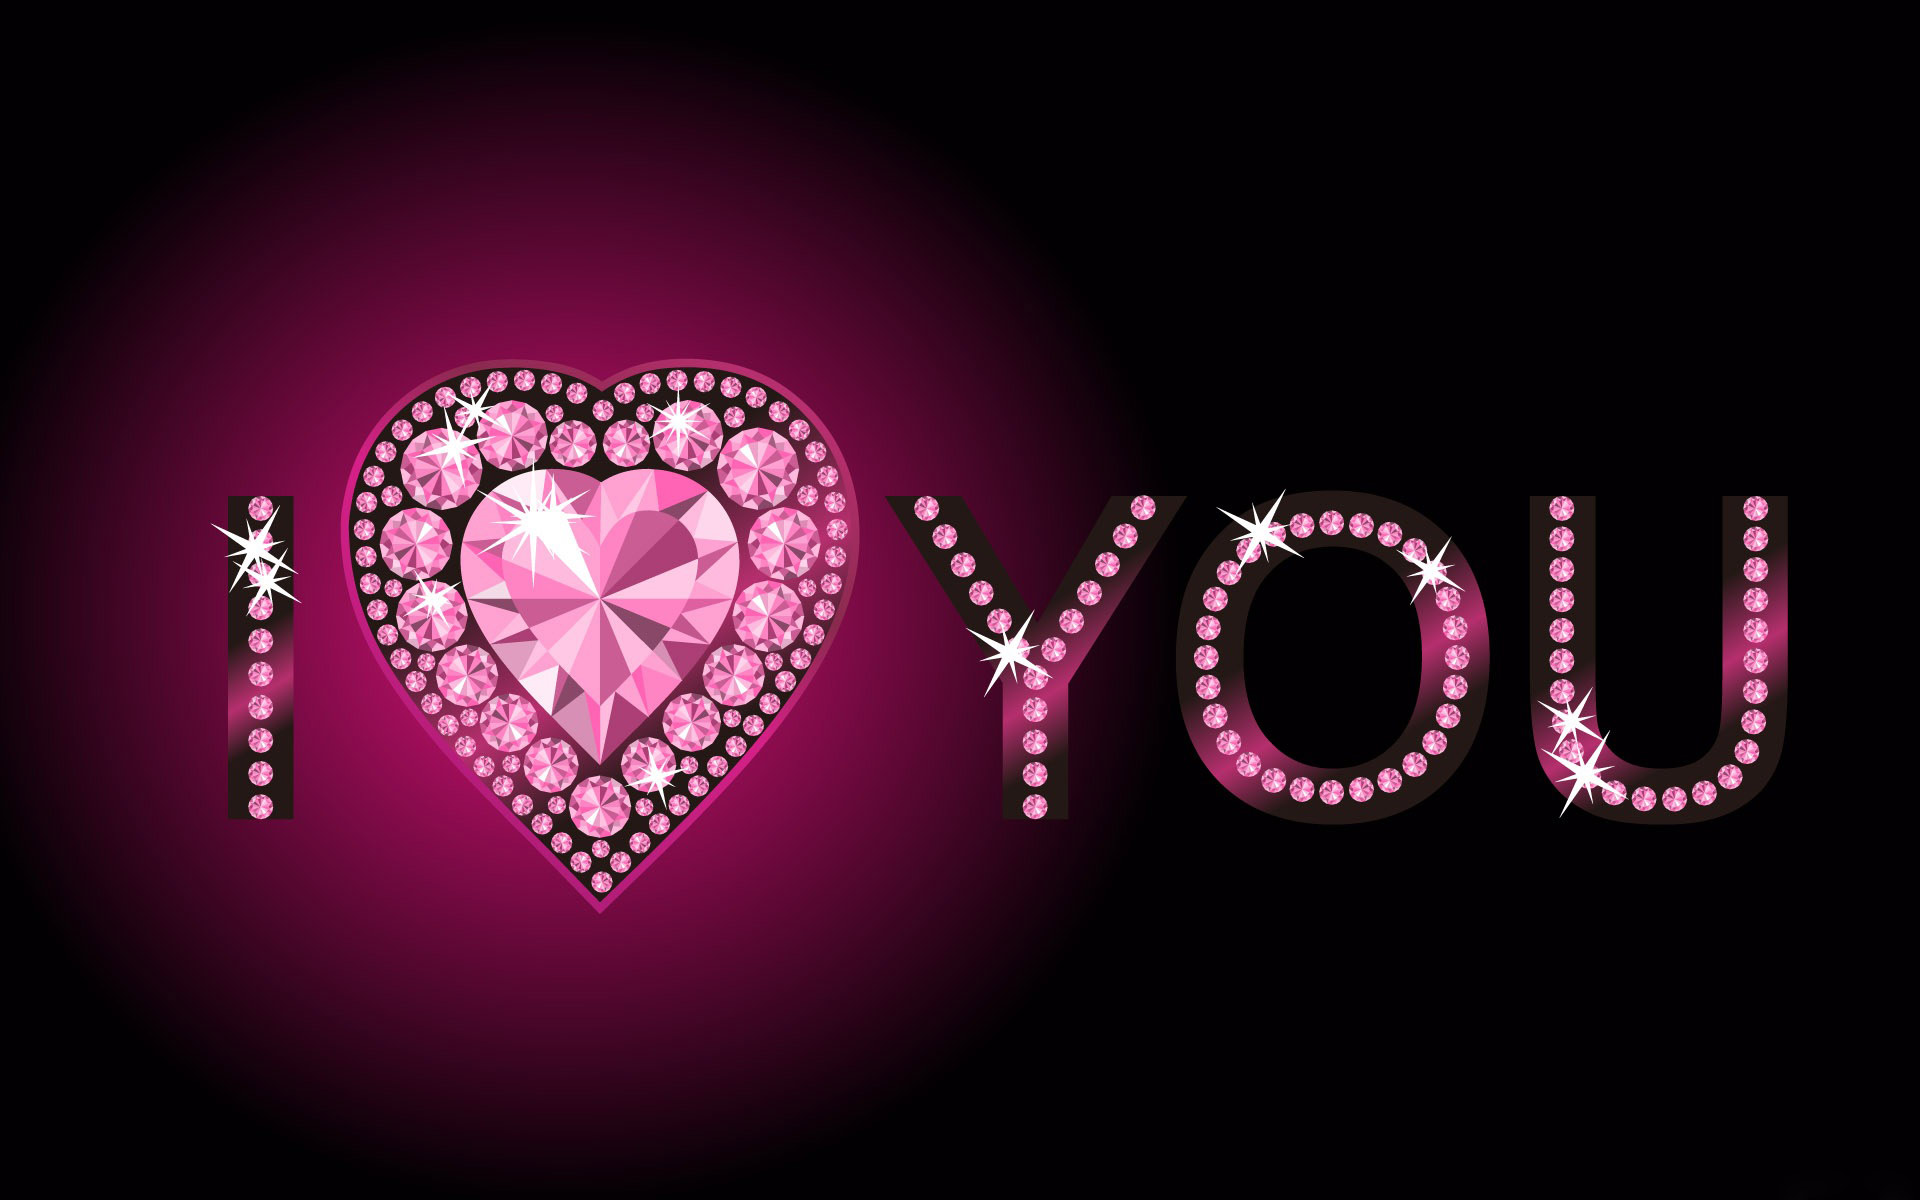 I Love You Wallpapers Pictures Images 1920x1200